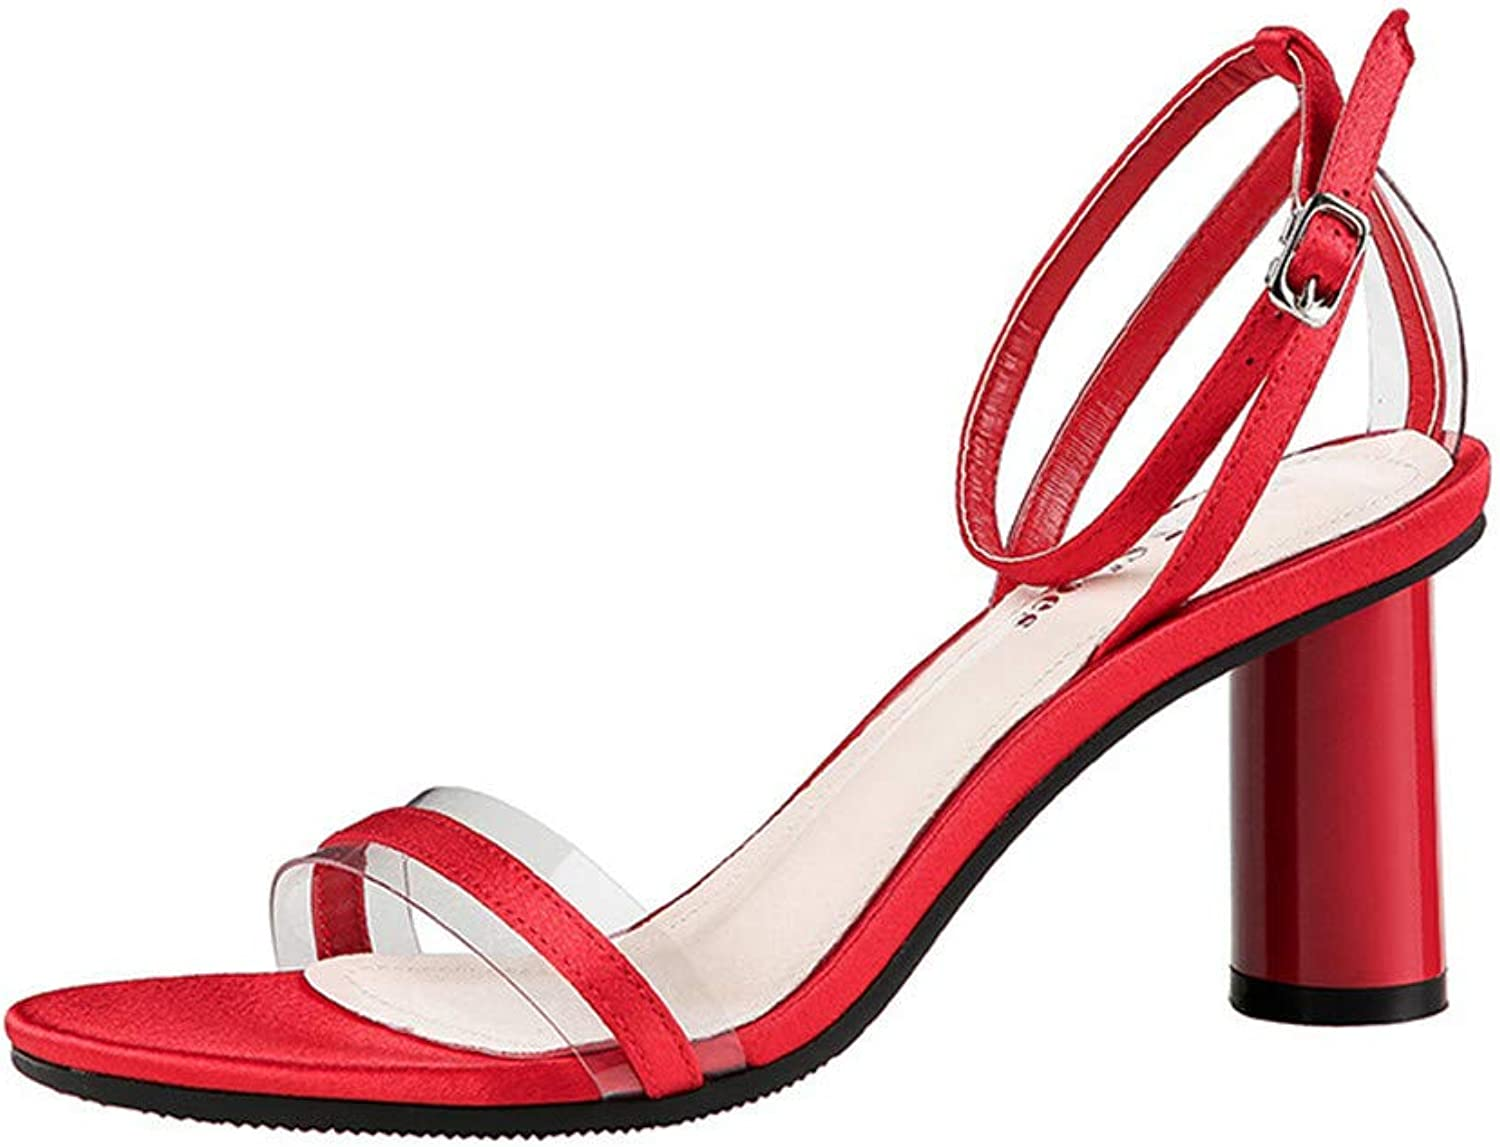 Women's Heeled Sandals Ankle Strap High Heels 7.5CM Open Toe Mid Heel Sandals Bridal Party shoes